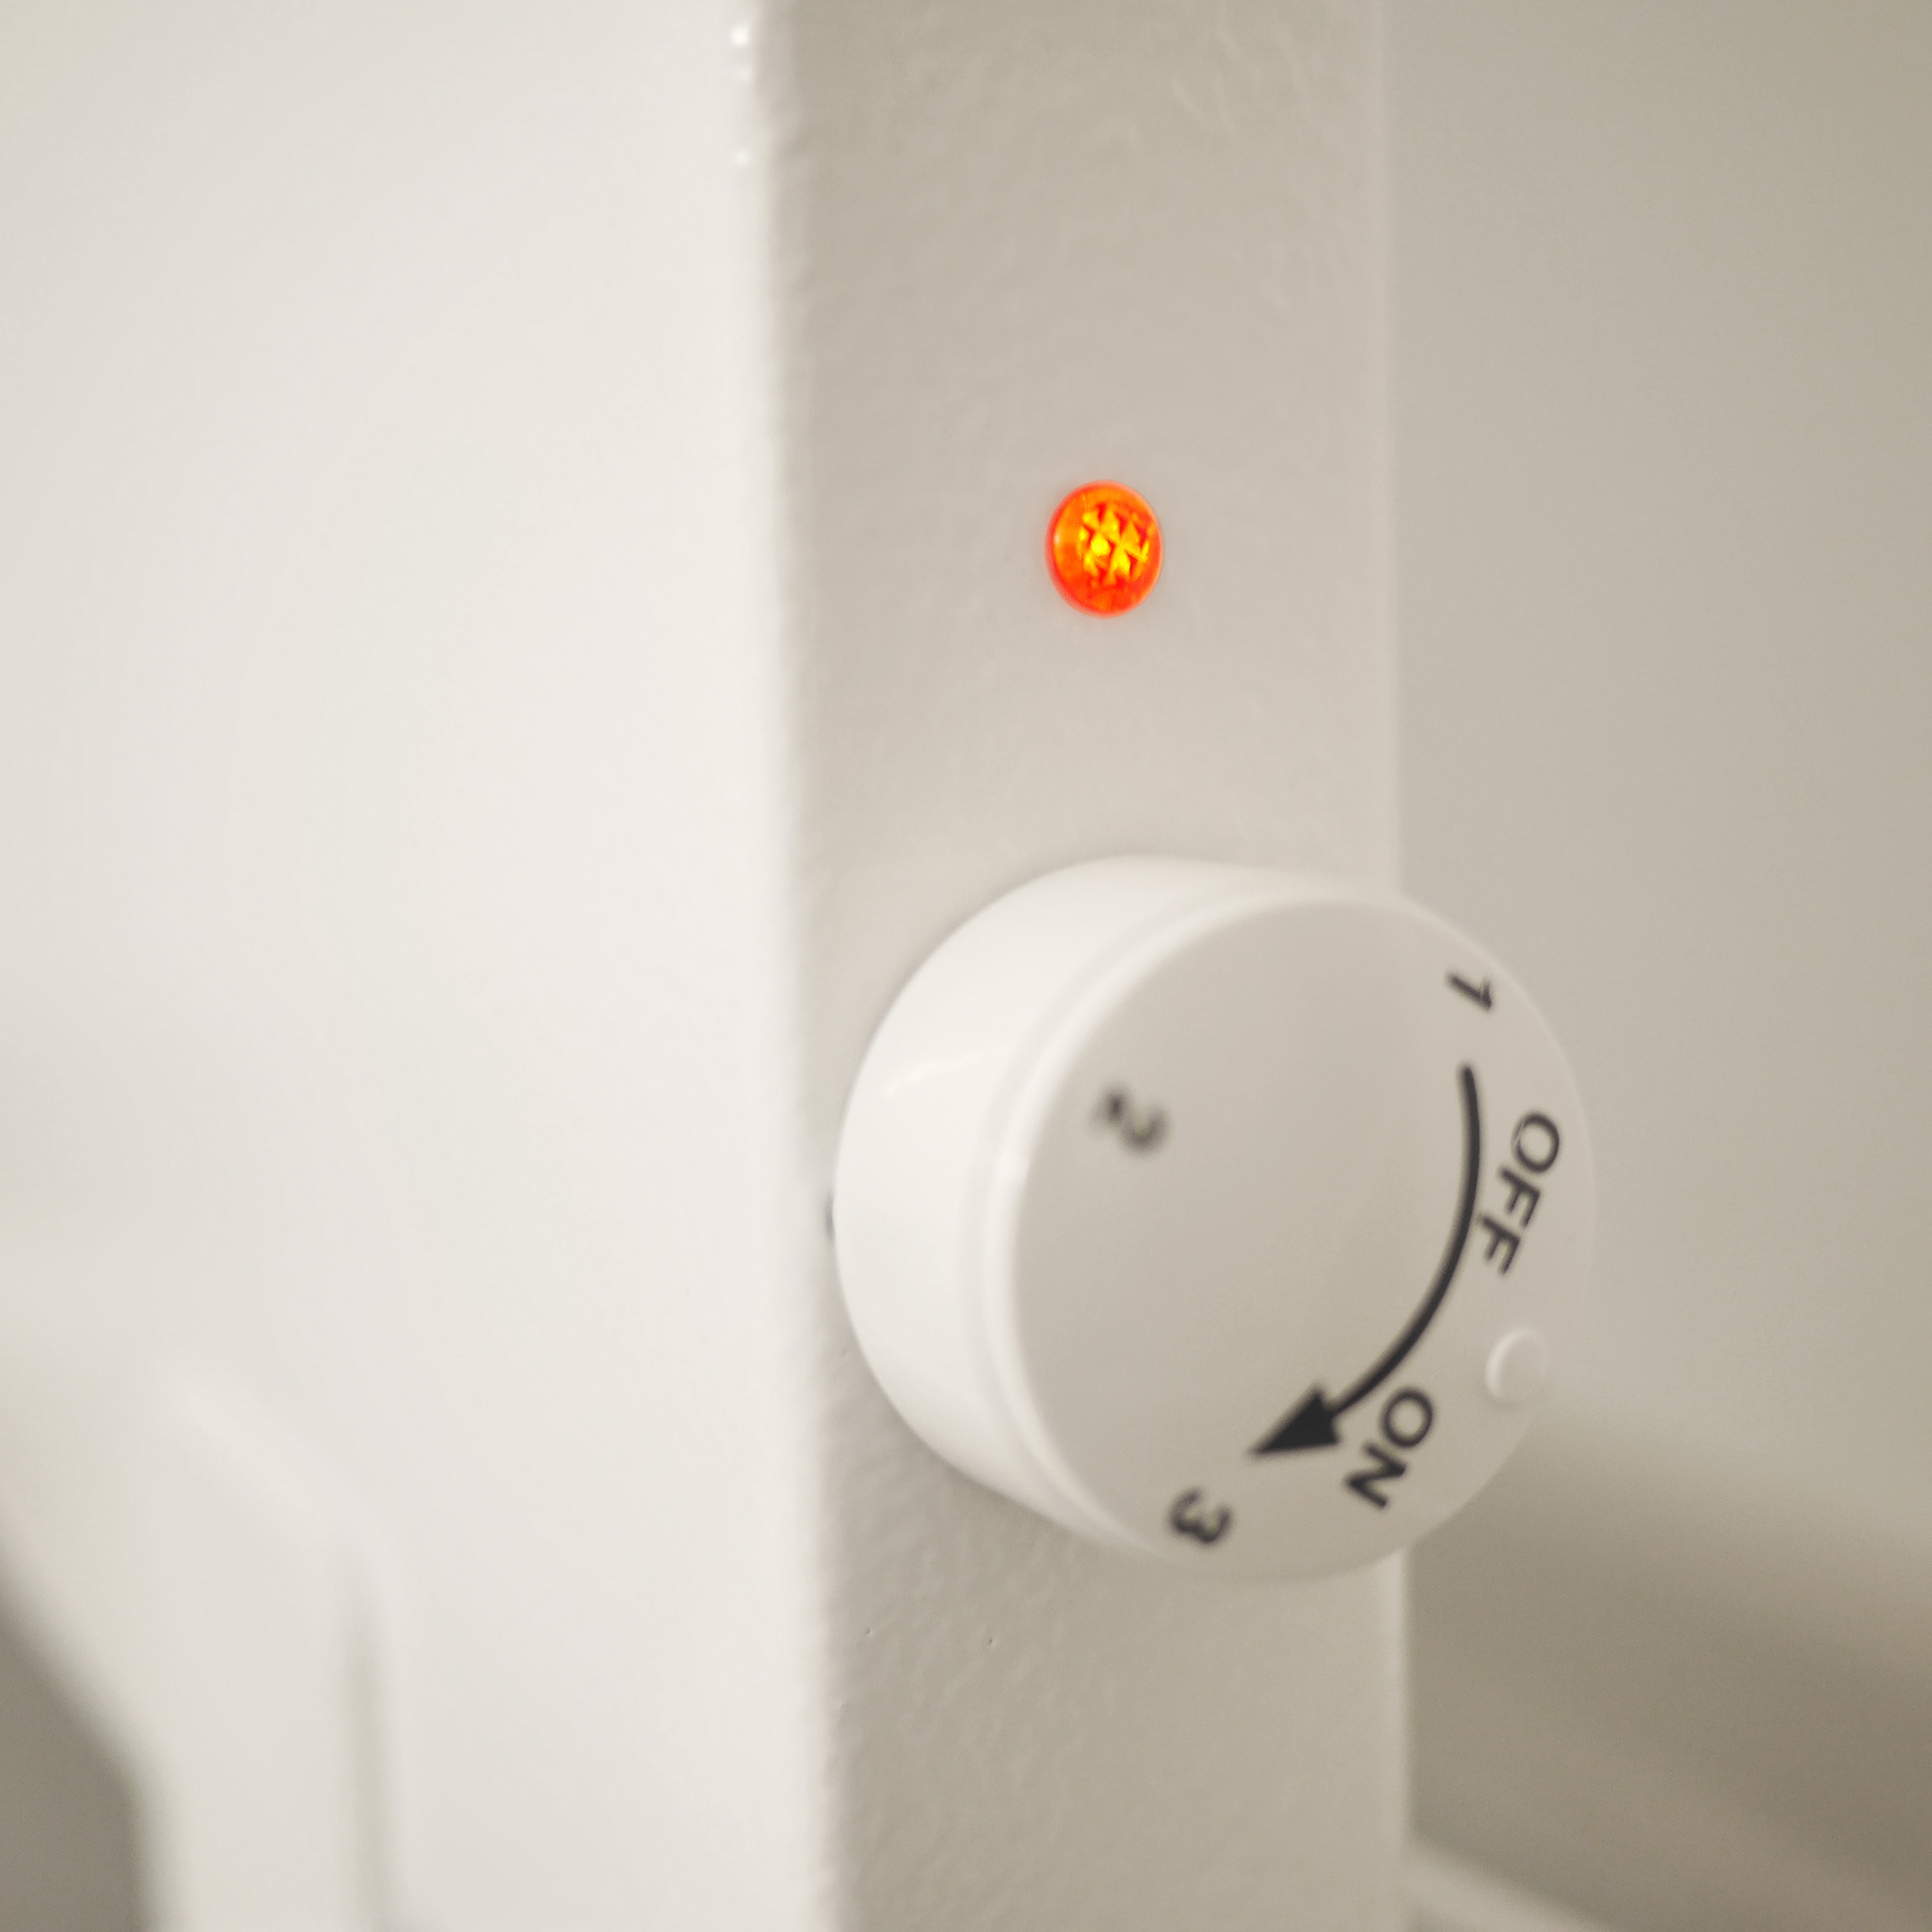 Steplessly-adjustable-thermostat-dial-hybrid-heating-panel